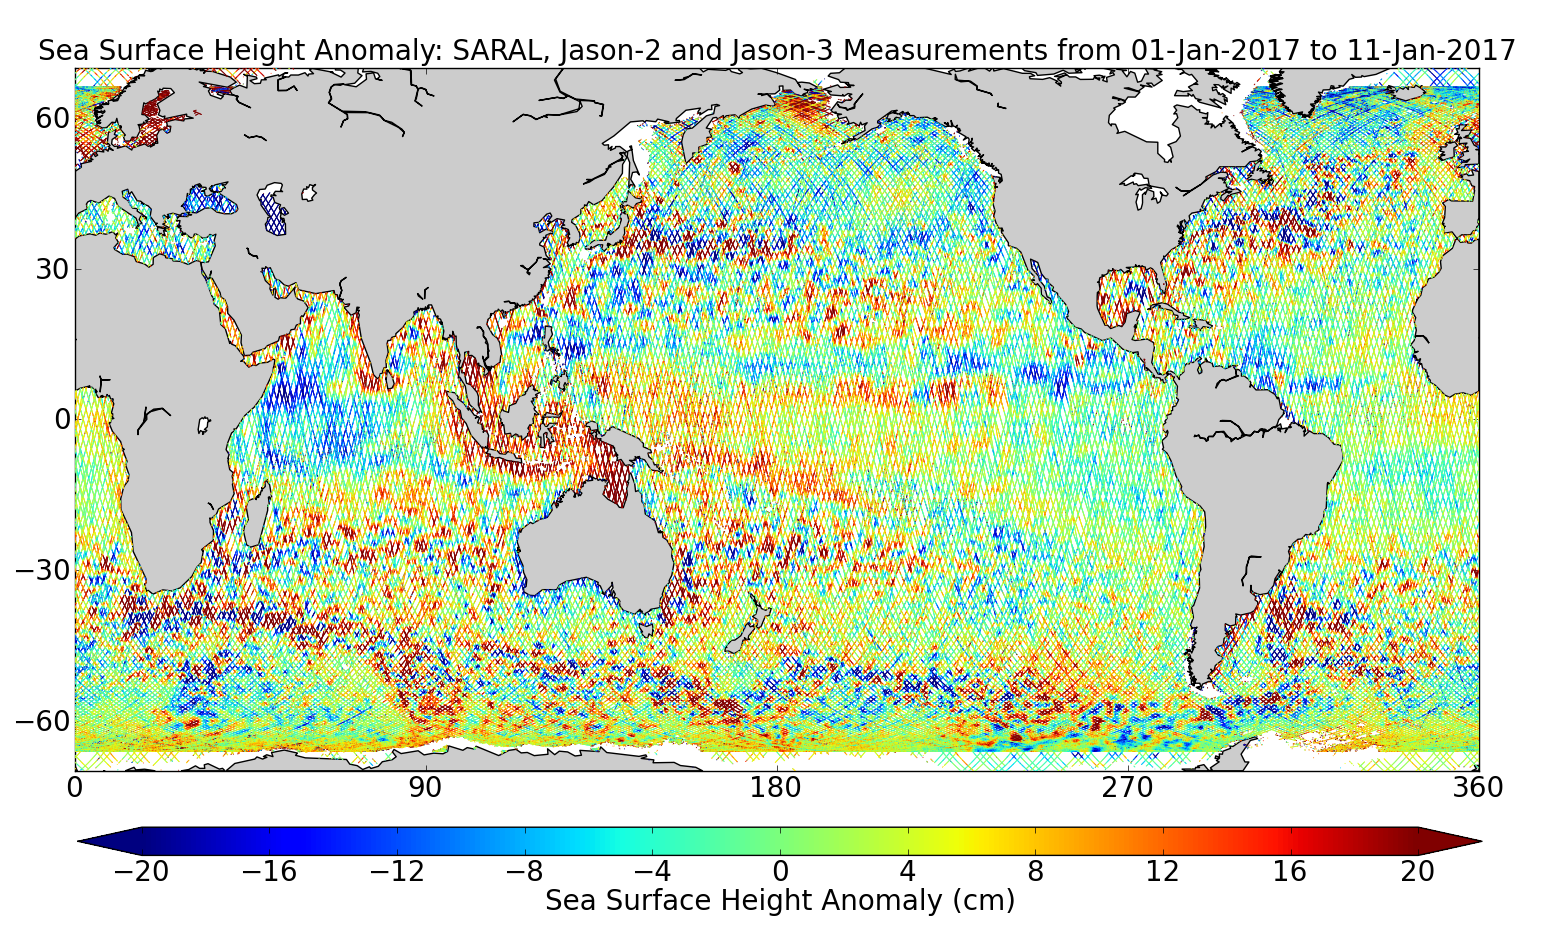 Sea Surface Height Anomaly: SARAL, Jason-2 and Jason-3 Measurements from 01-Jan-2017 to 11-Jan-2017